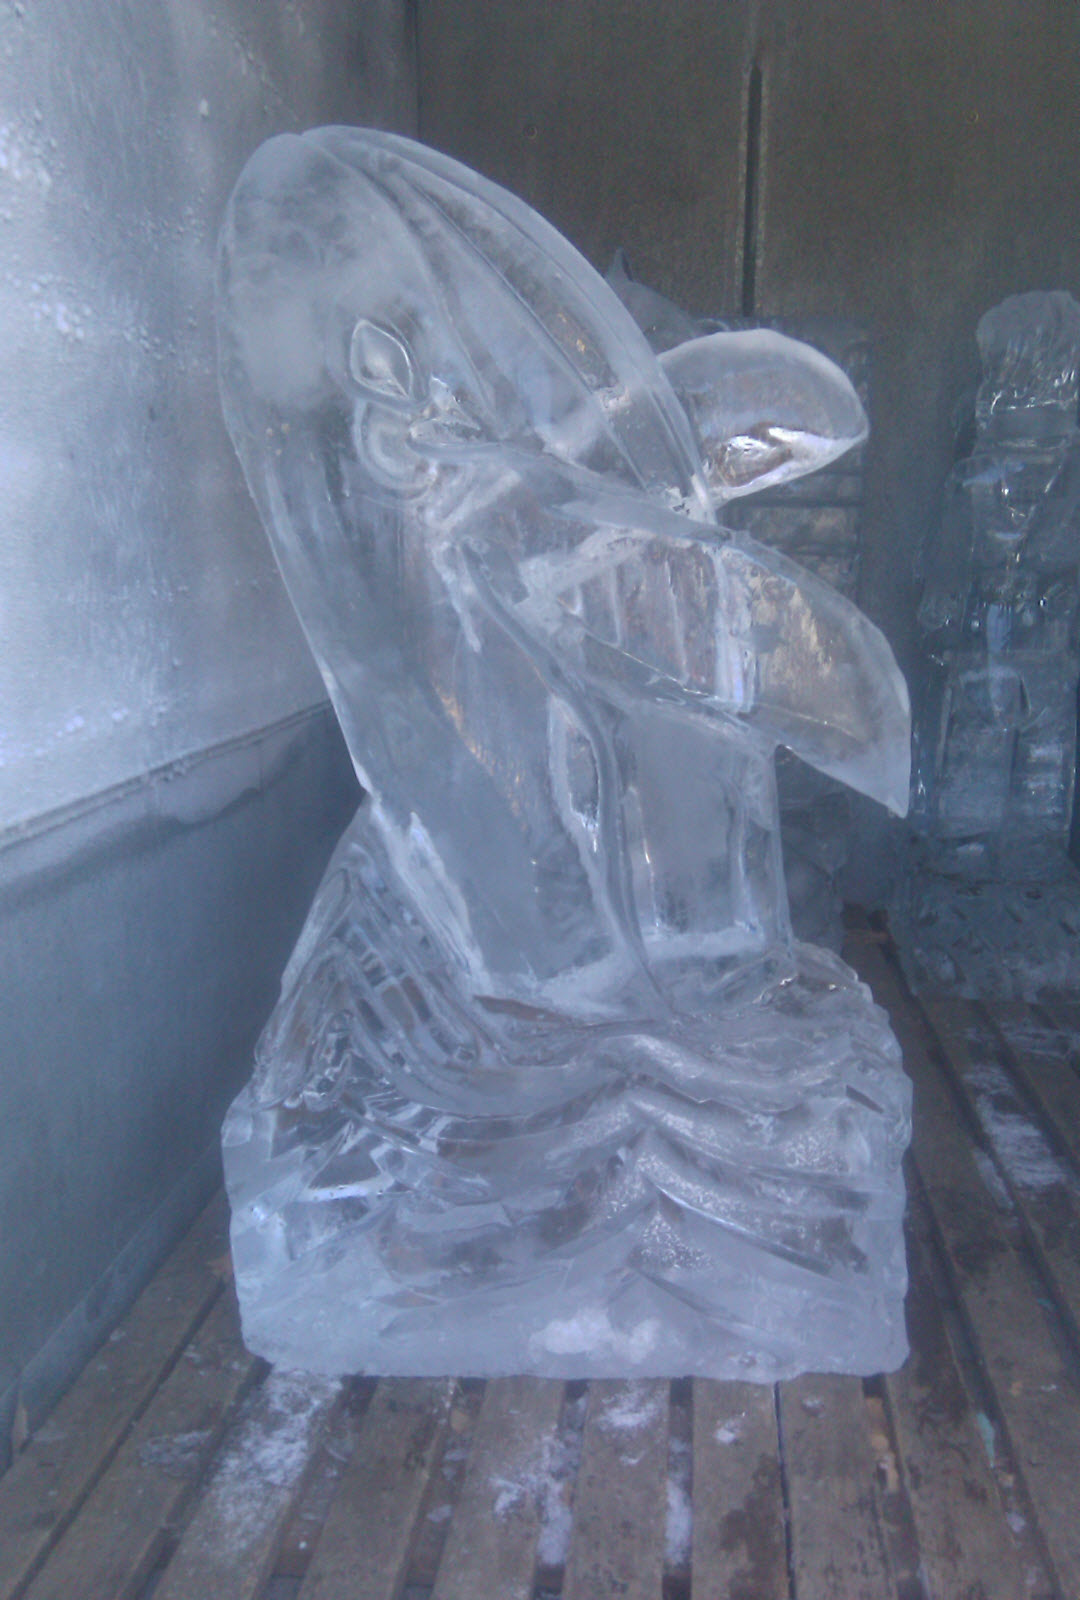 Chevy 3 3 >> Muzzy Ice Service - Ice Sculptures / Ice Carvings for Weddings, Anniversaries, and Special Events